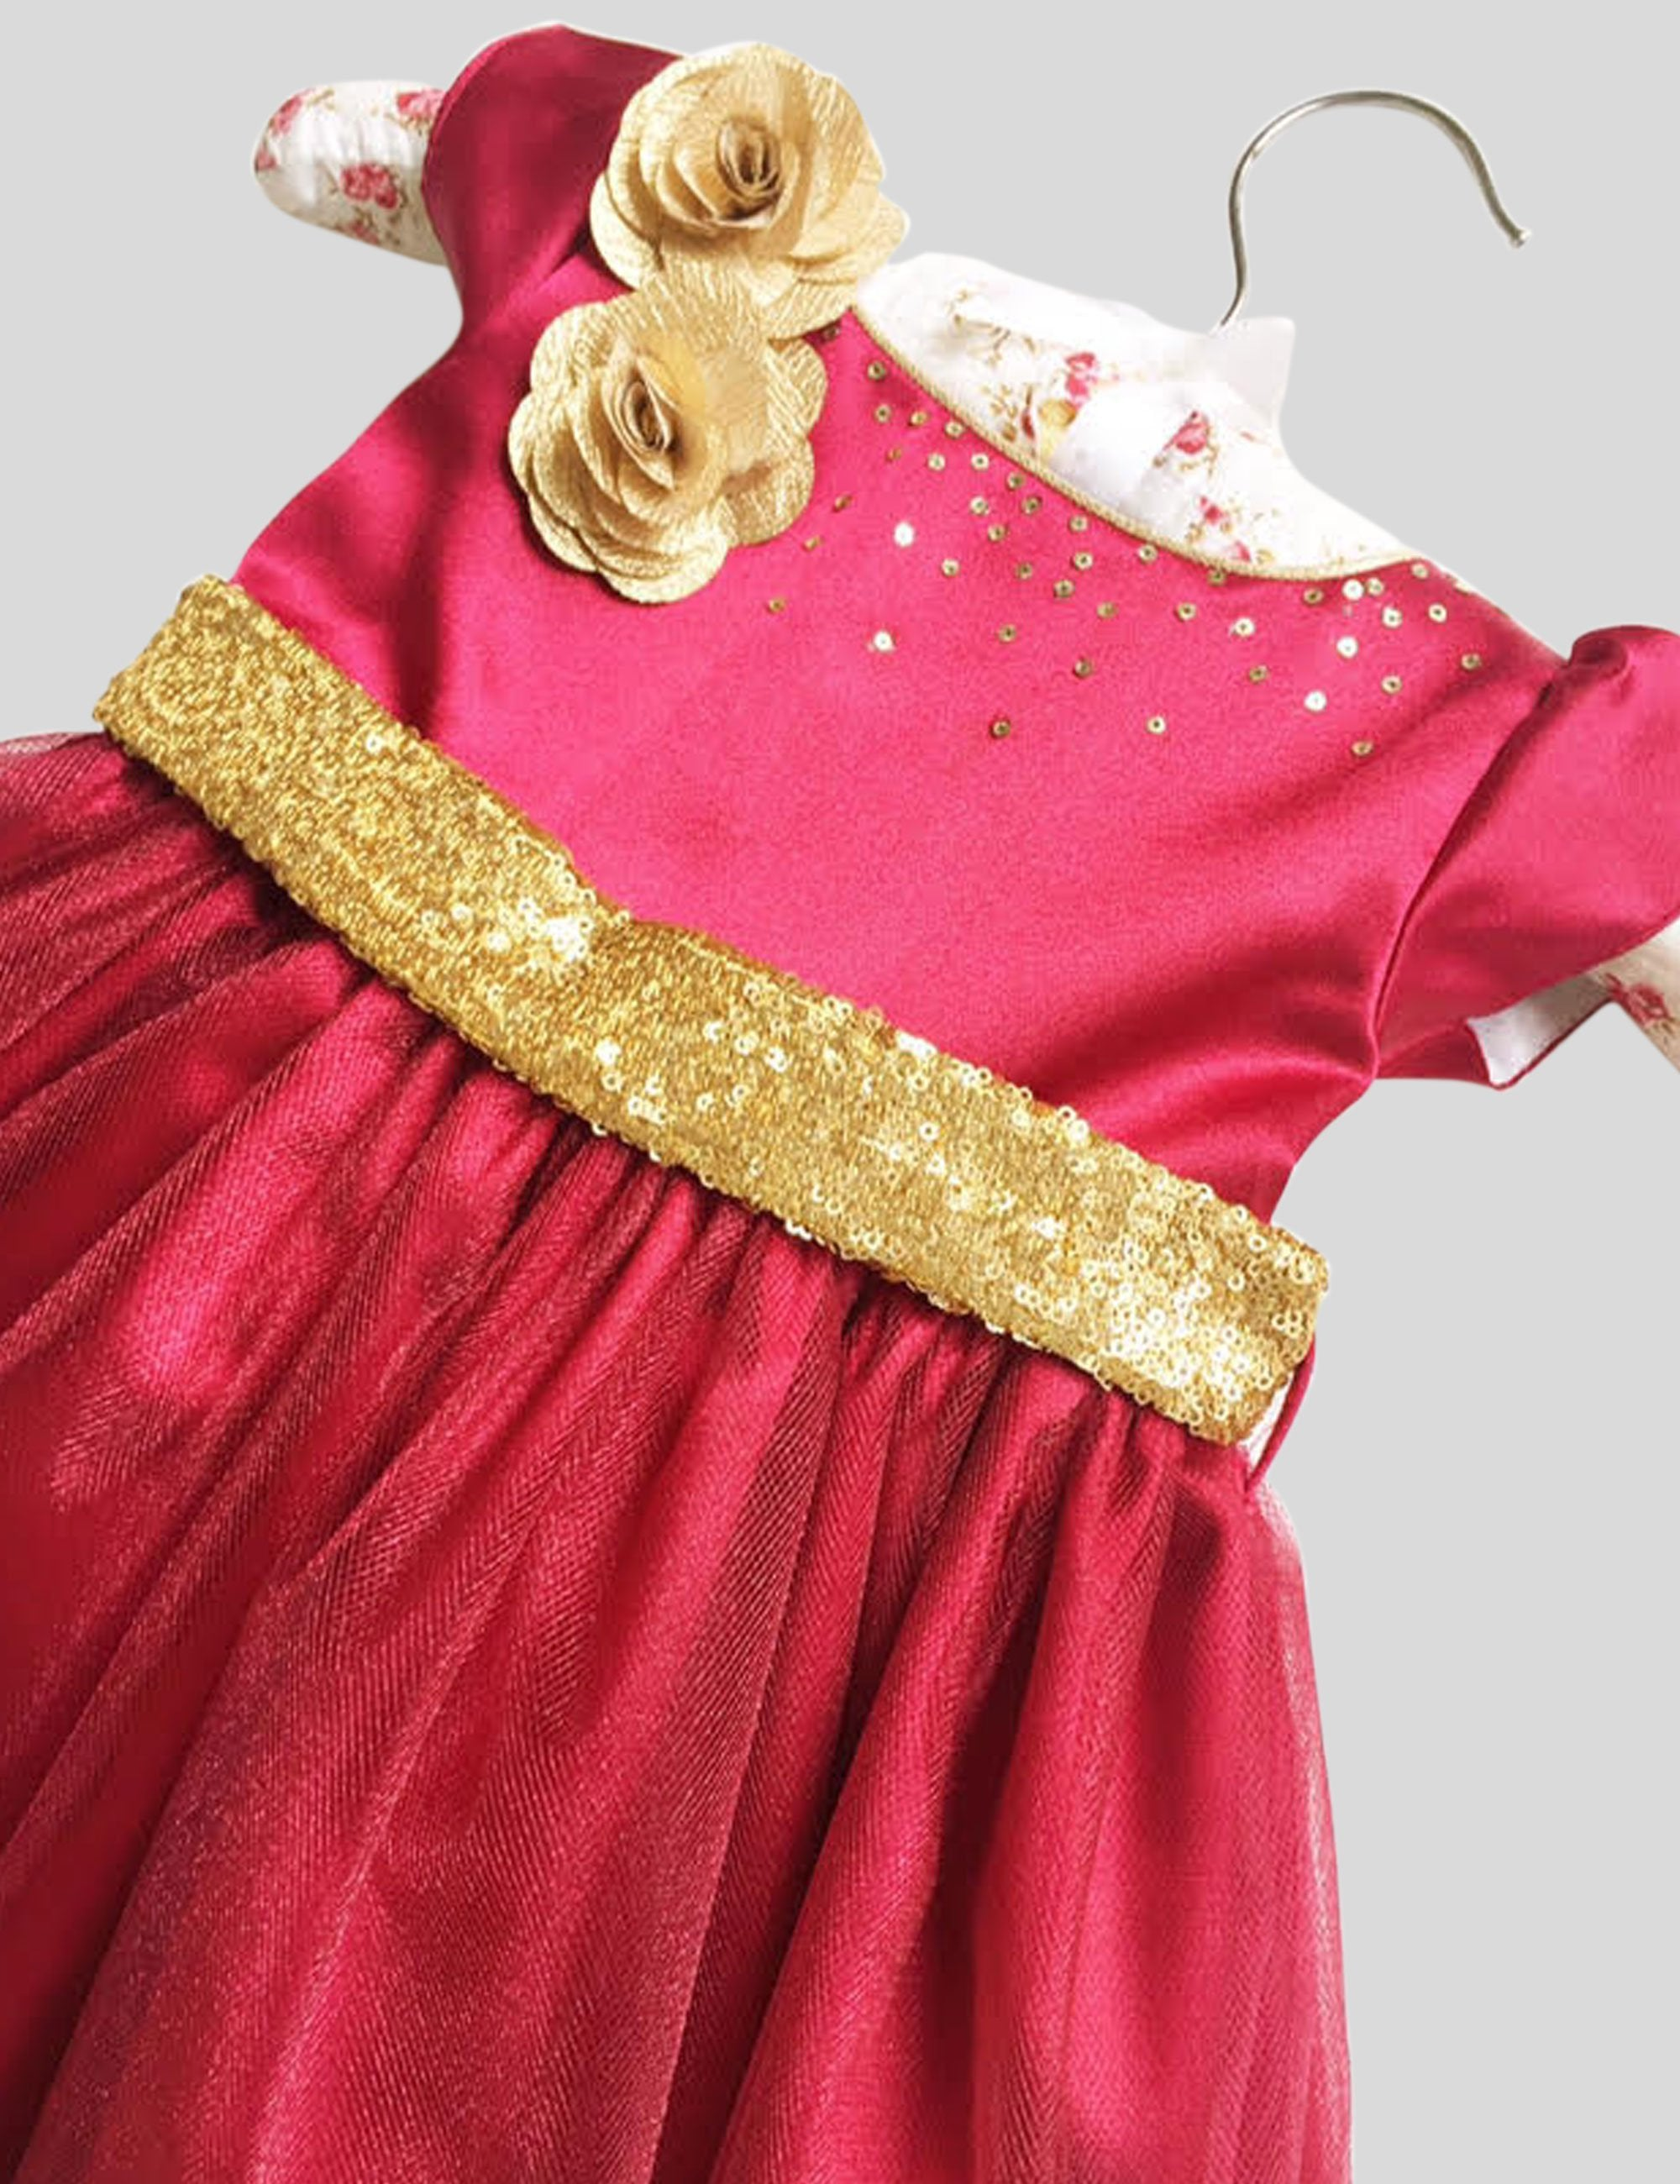 Wine and Gold Gown in Maroon and Gold Colour for Girls